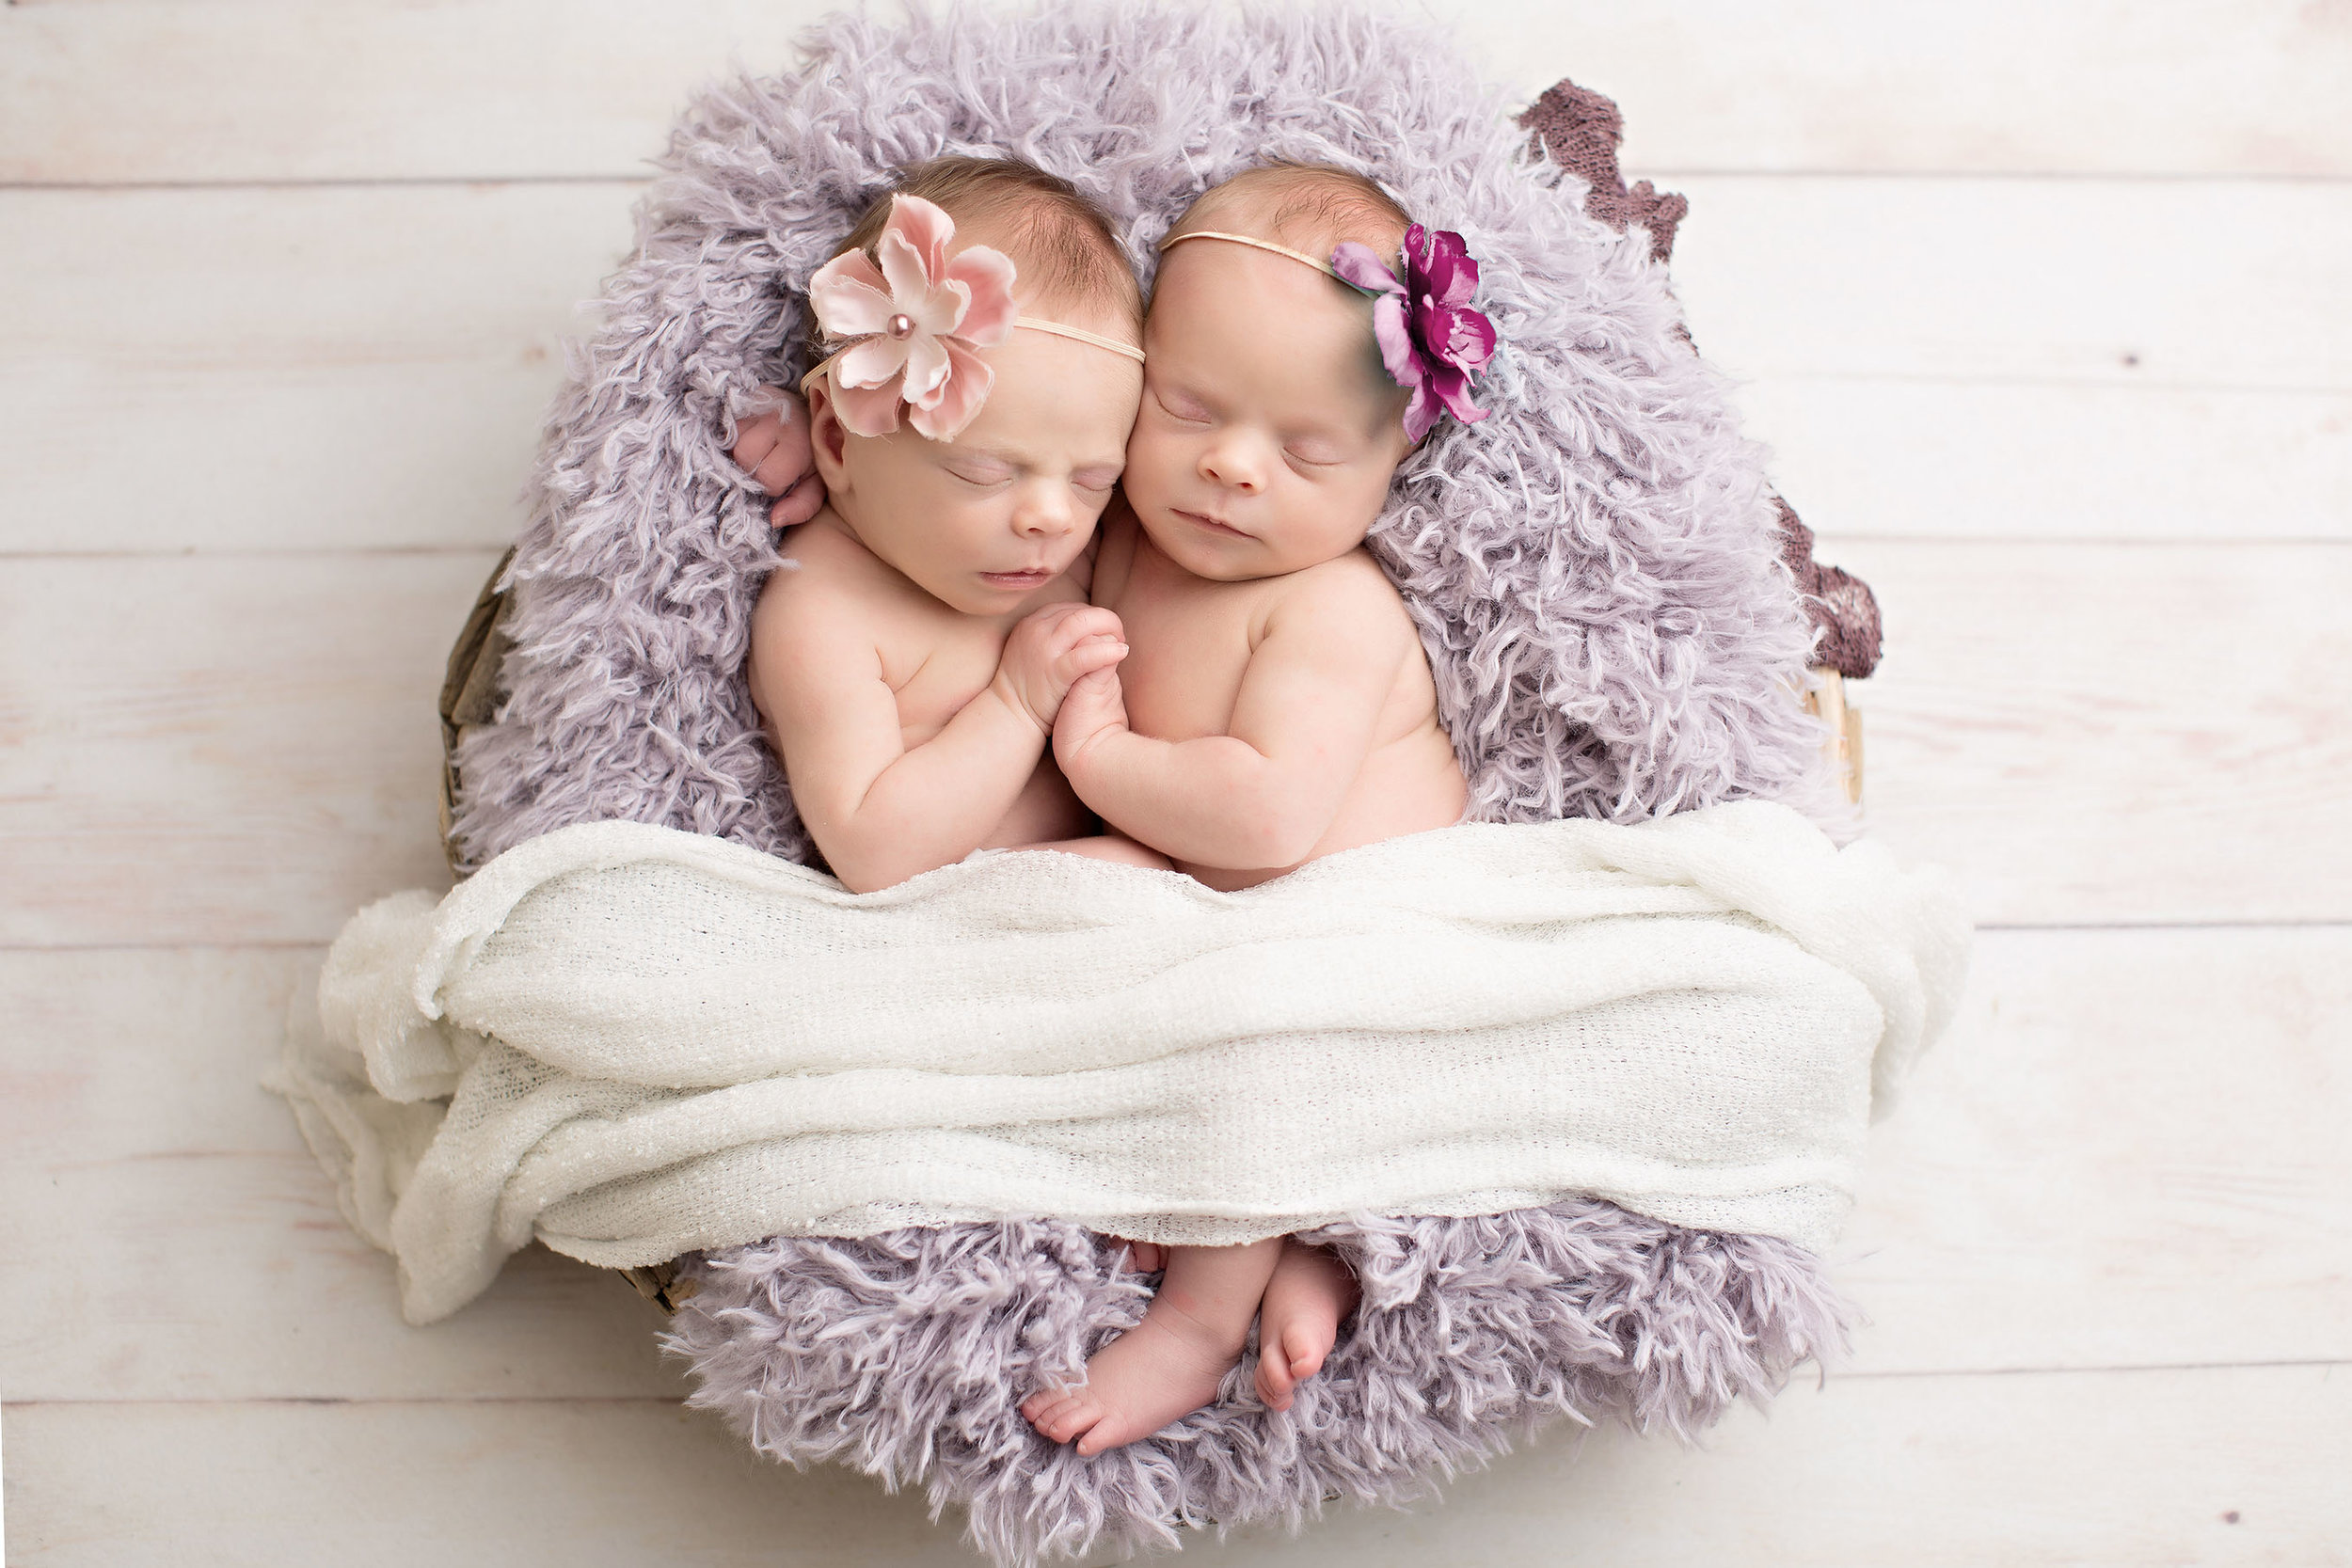 Chloe and Cameron (Newborn)-14c copy.jpg